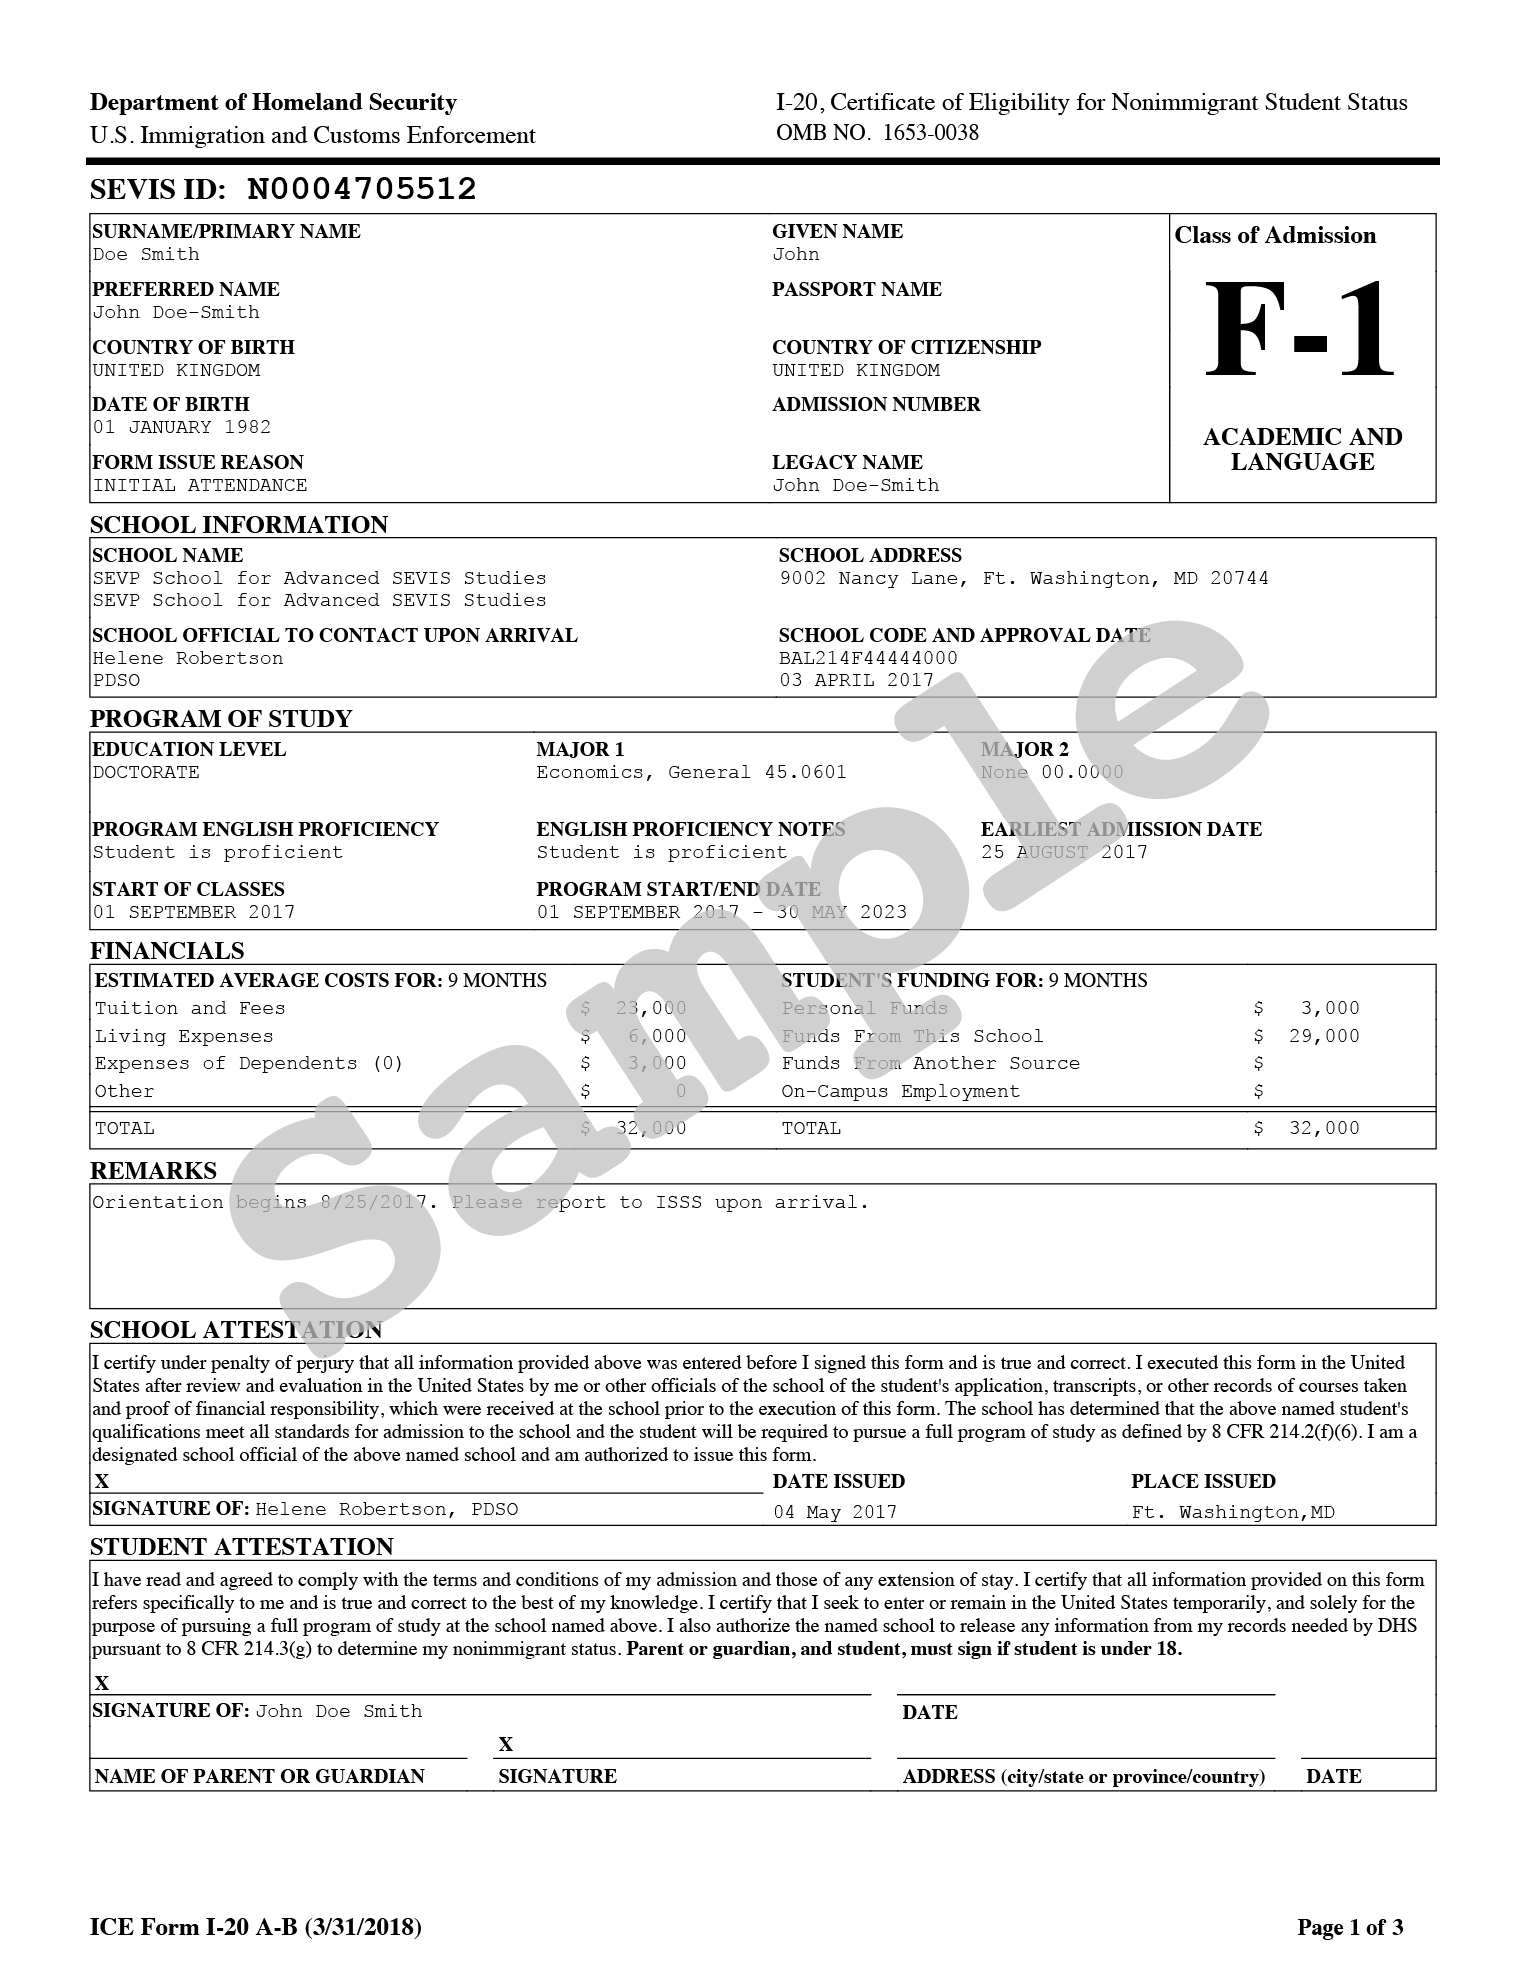 Sample image of form I-20, Certificate of Eligibility for Nonimmigrant Student Status